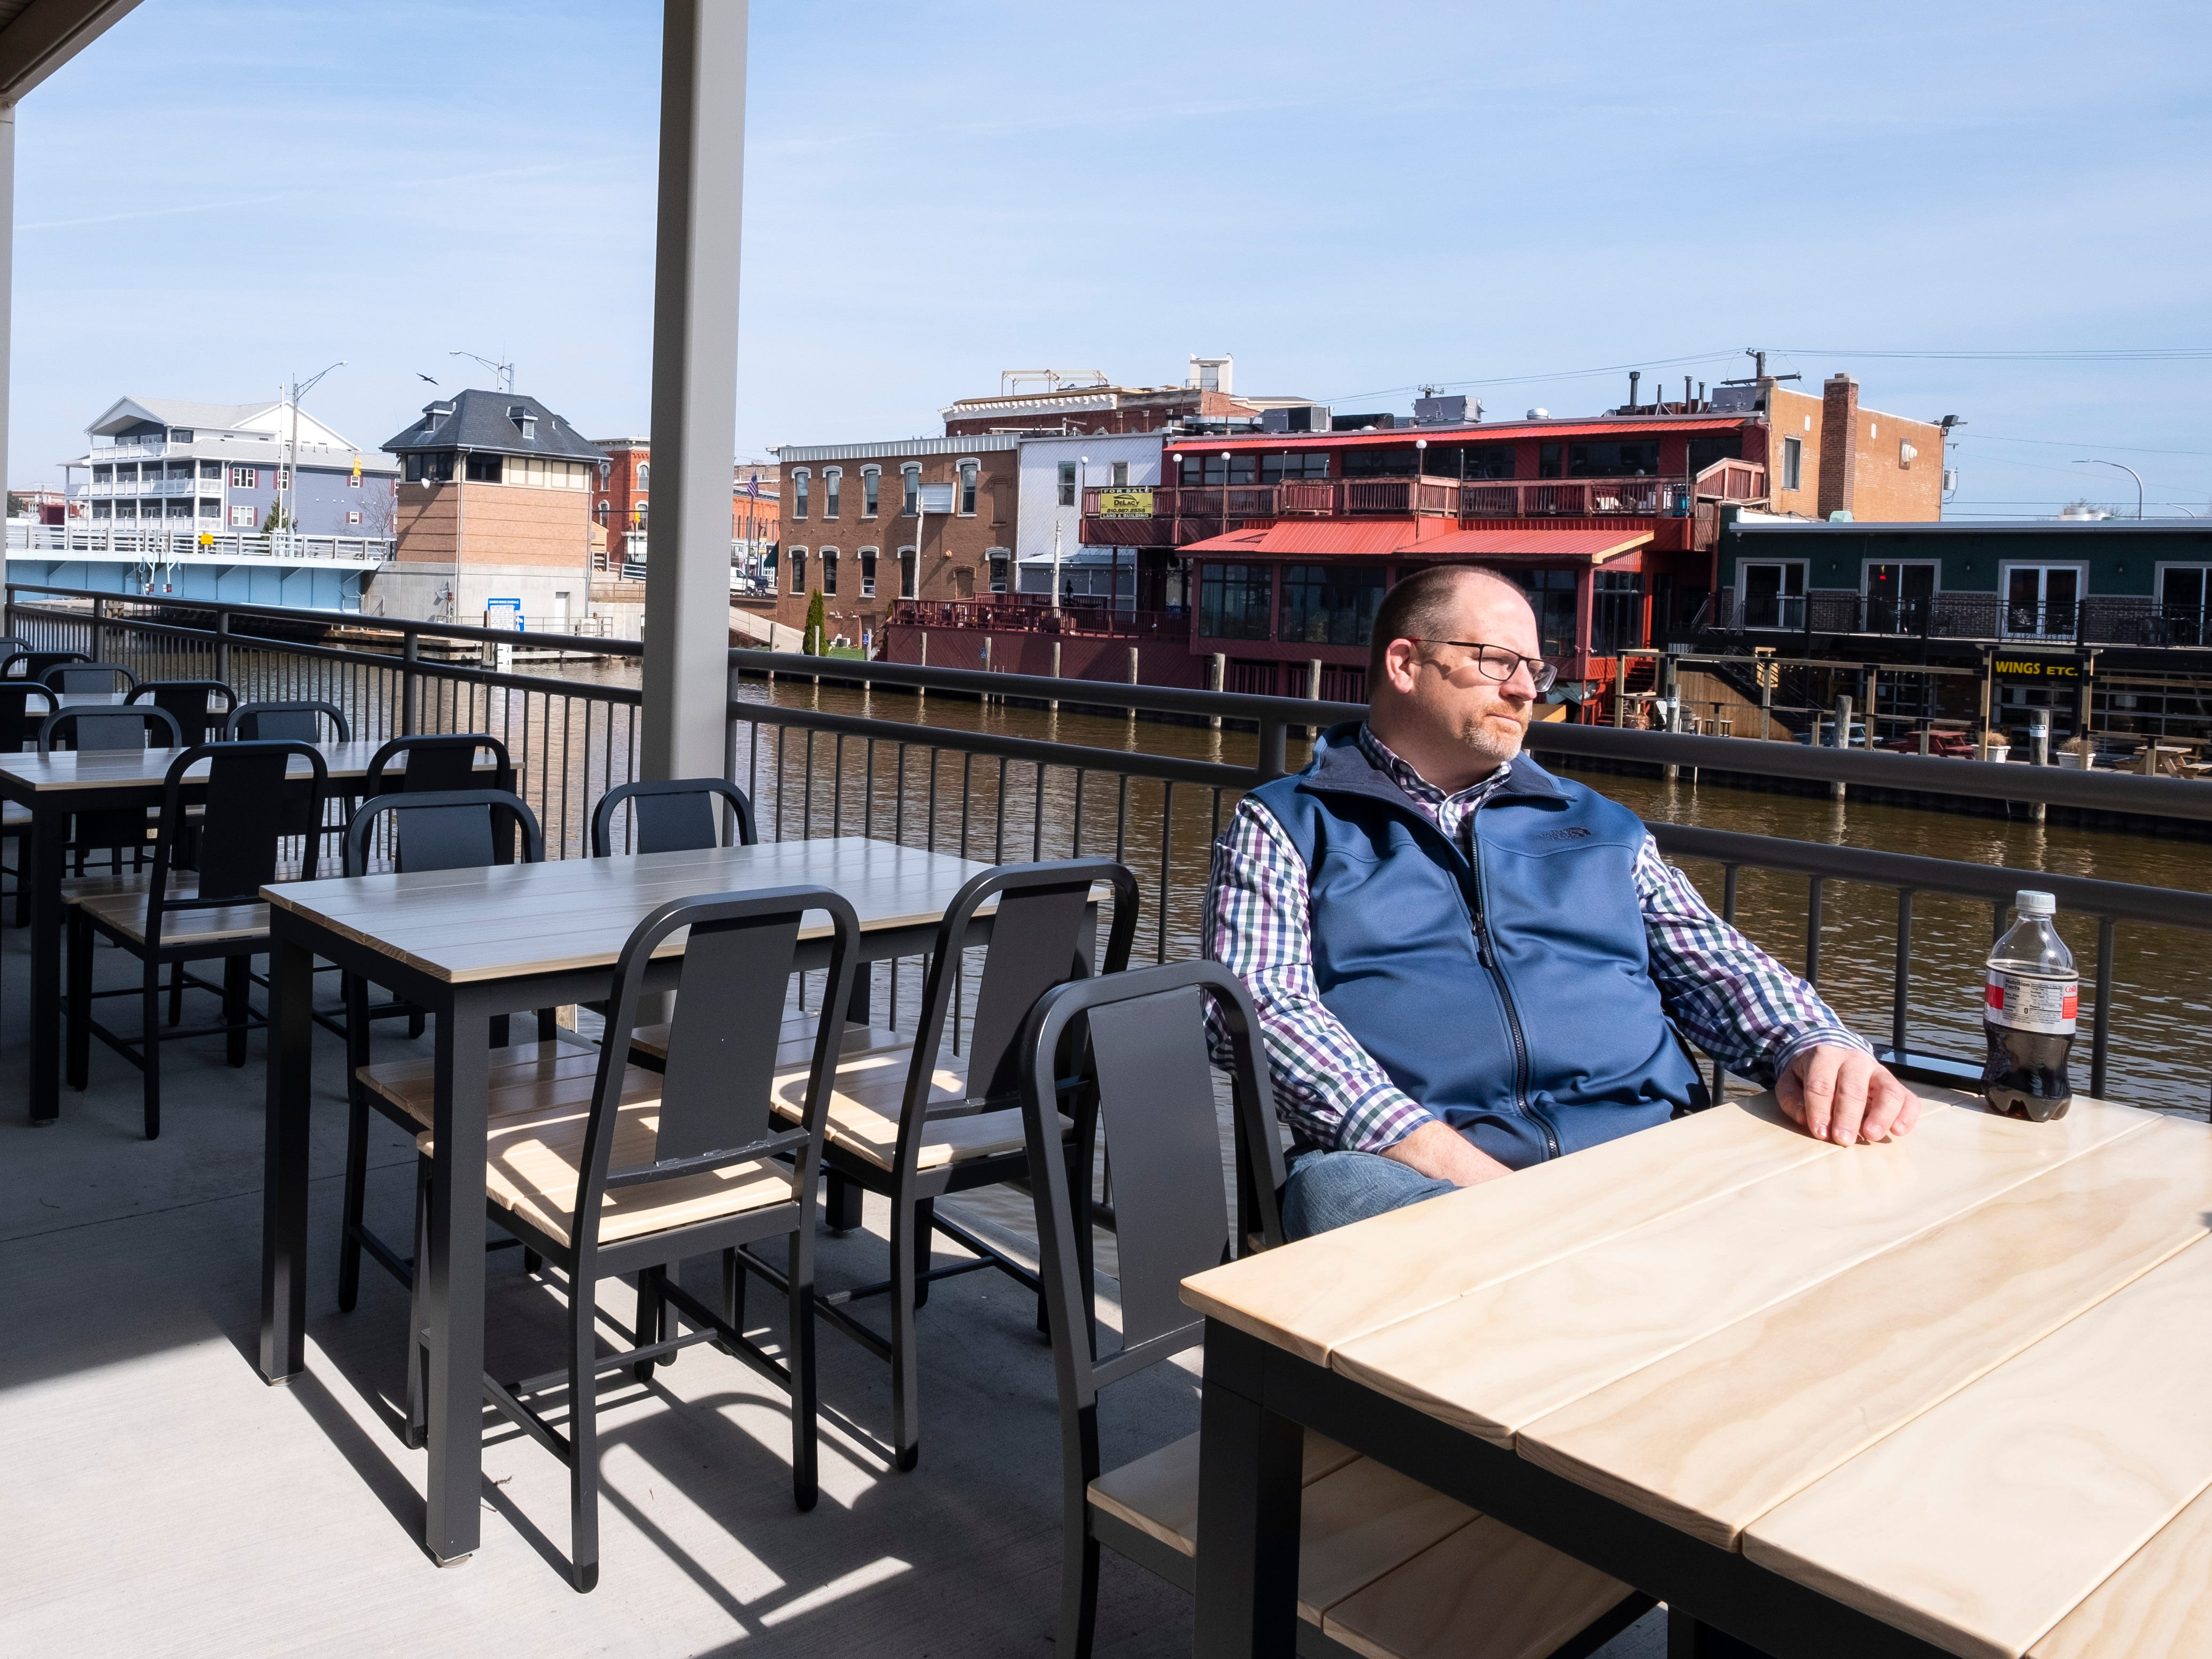 CityFlats Hotel project manager Scott Beedon sits on the patio outside TheKitchen  Wednesday, April 17, 2019.